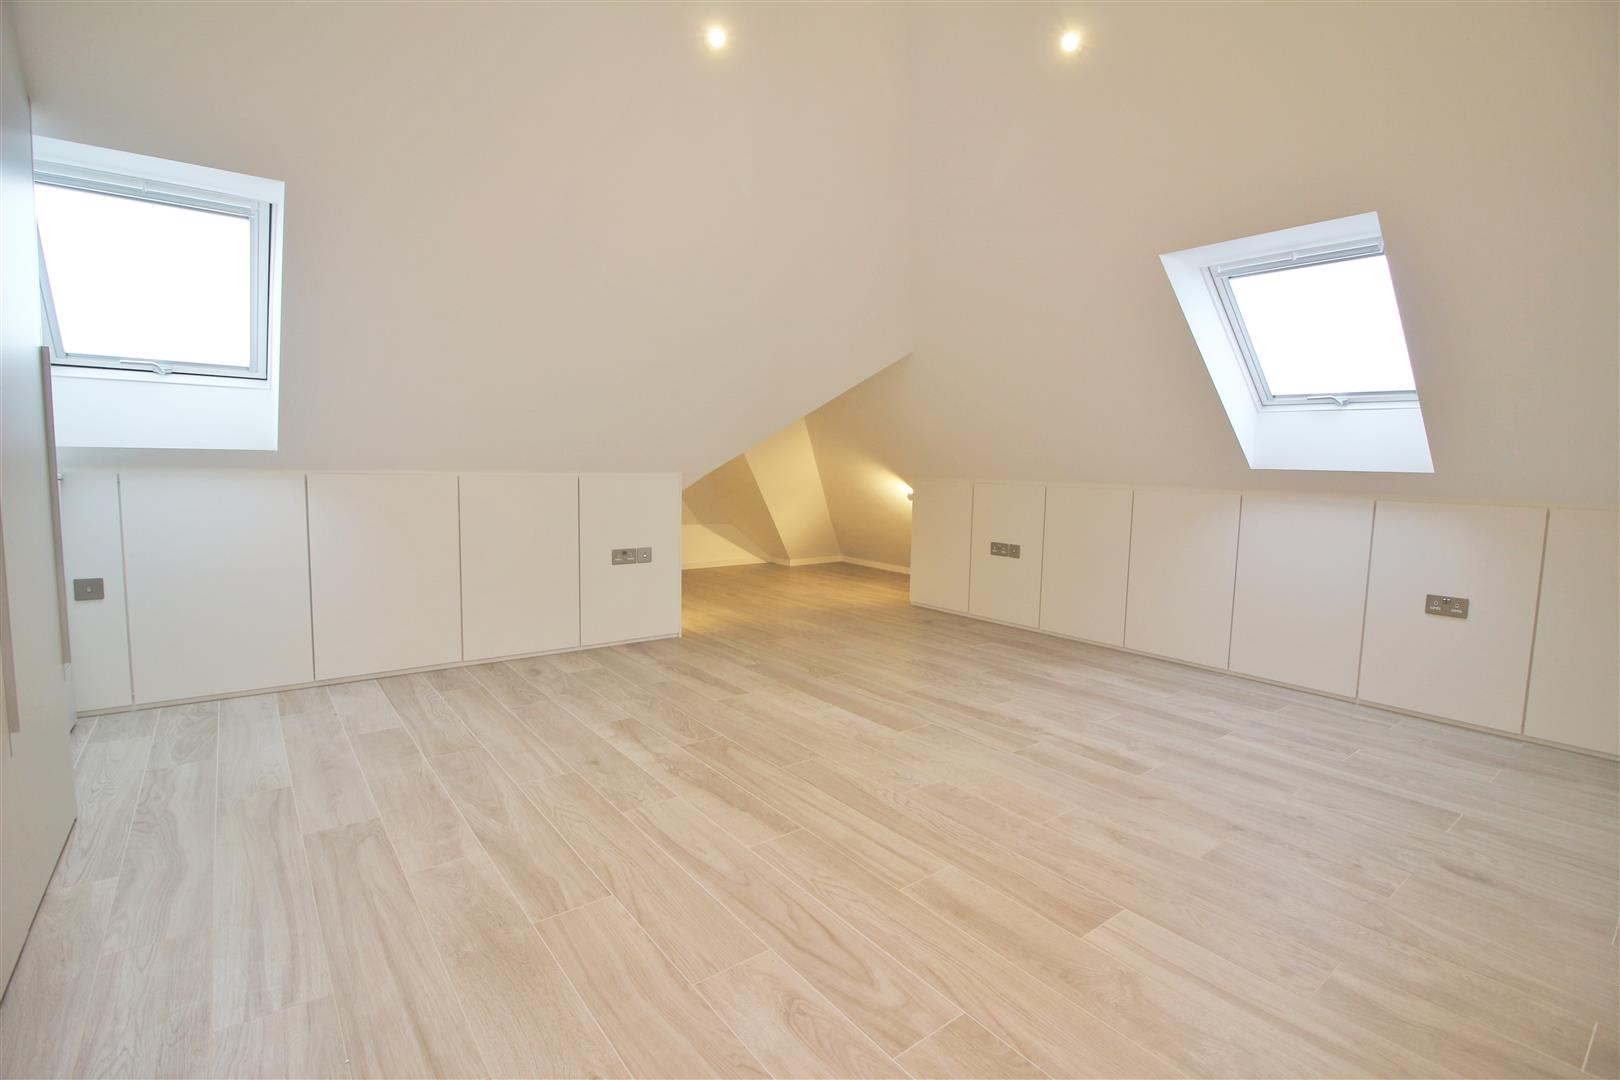 7 bed to rent - (Property Image 24)